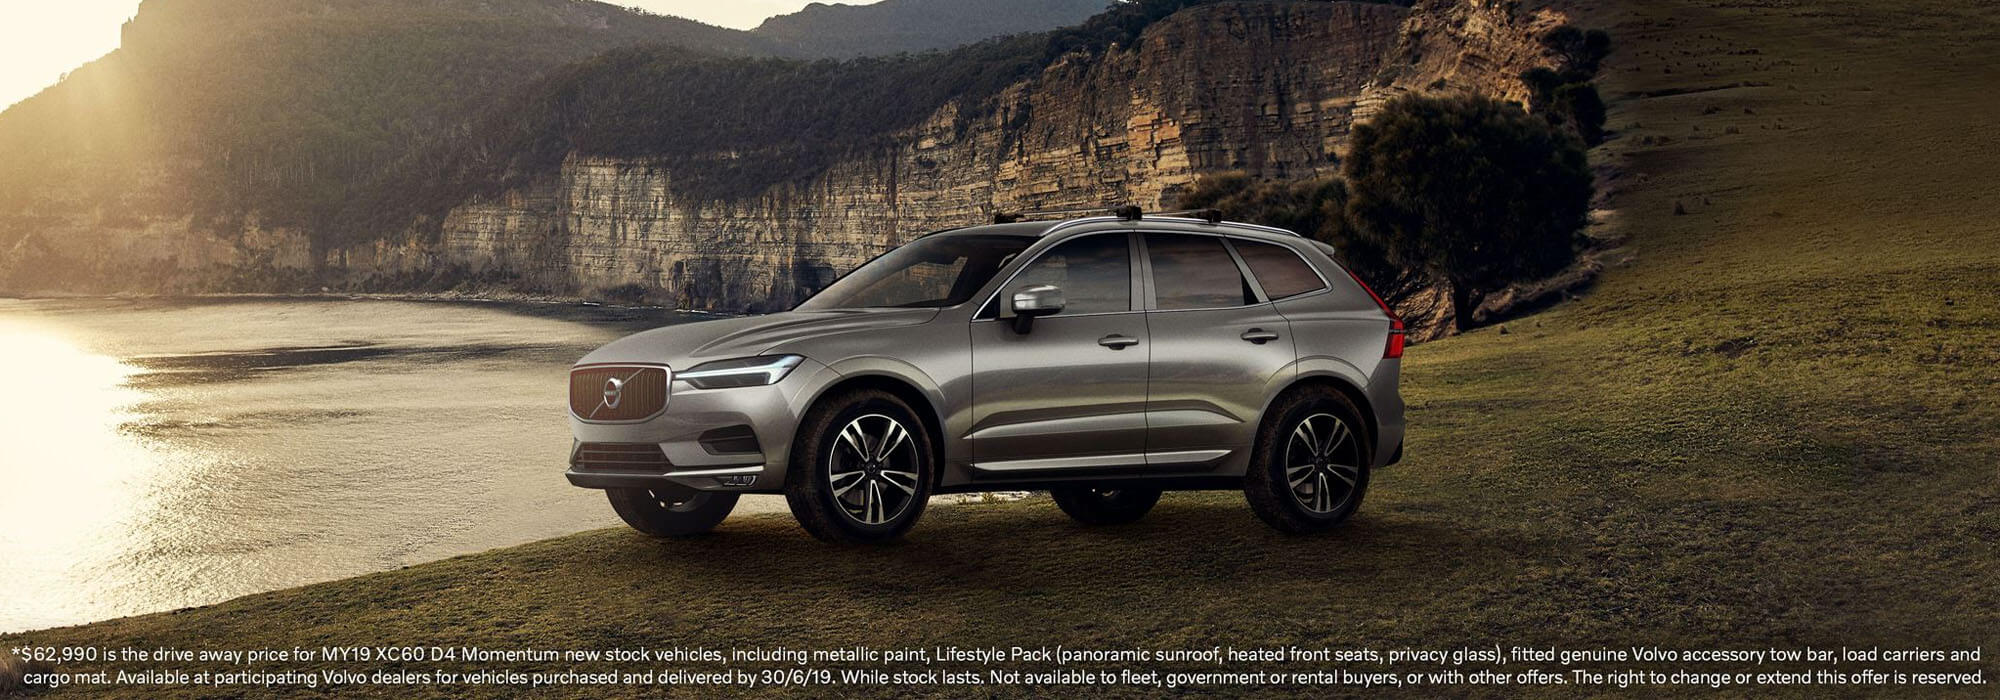 For a limited time the Volvo MY19 XC60 D4 Momentum is available from $62,990 Drive Away*.